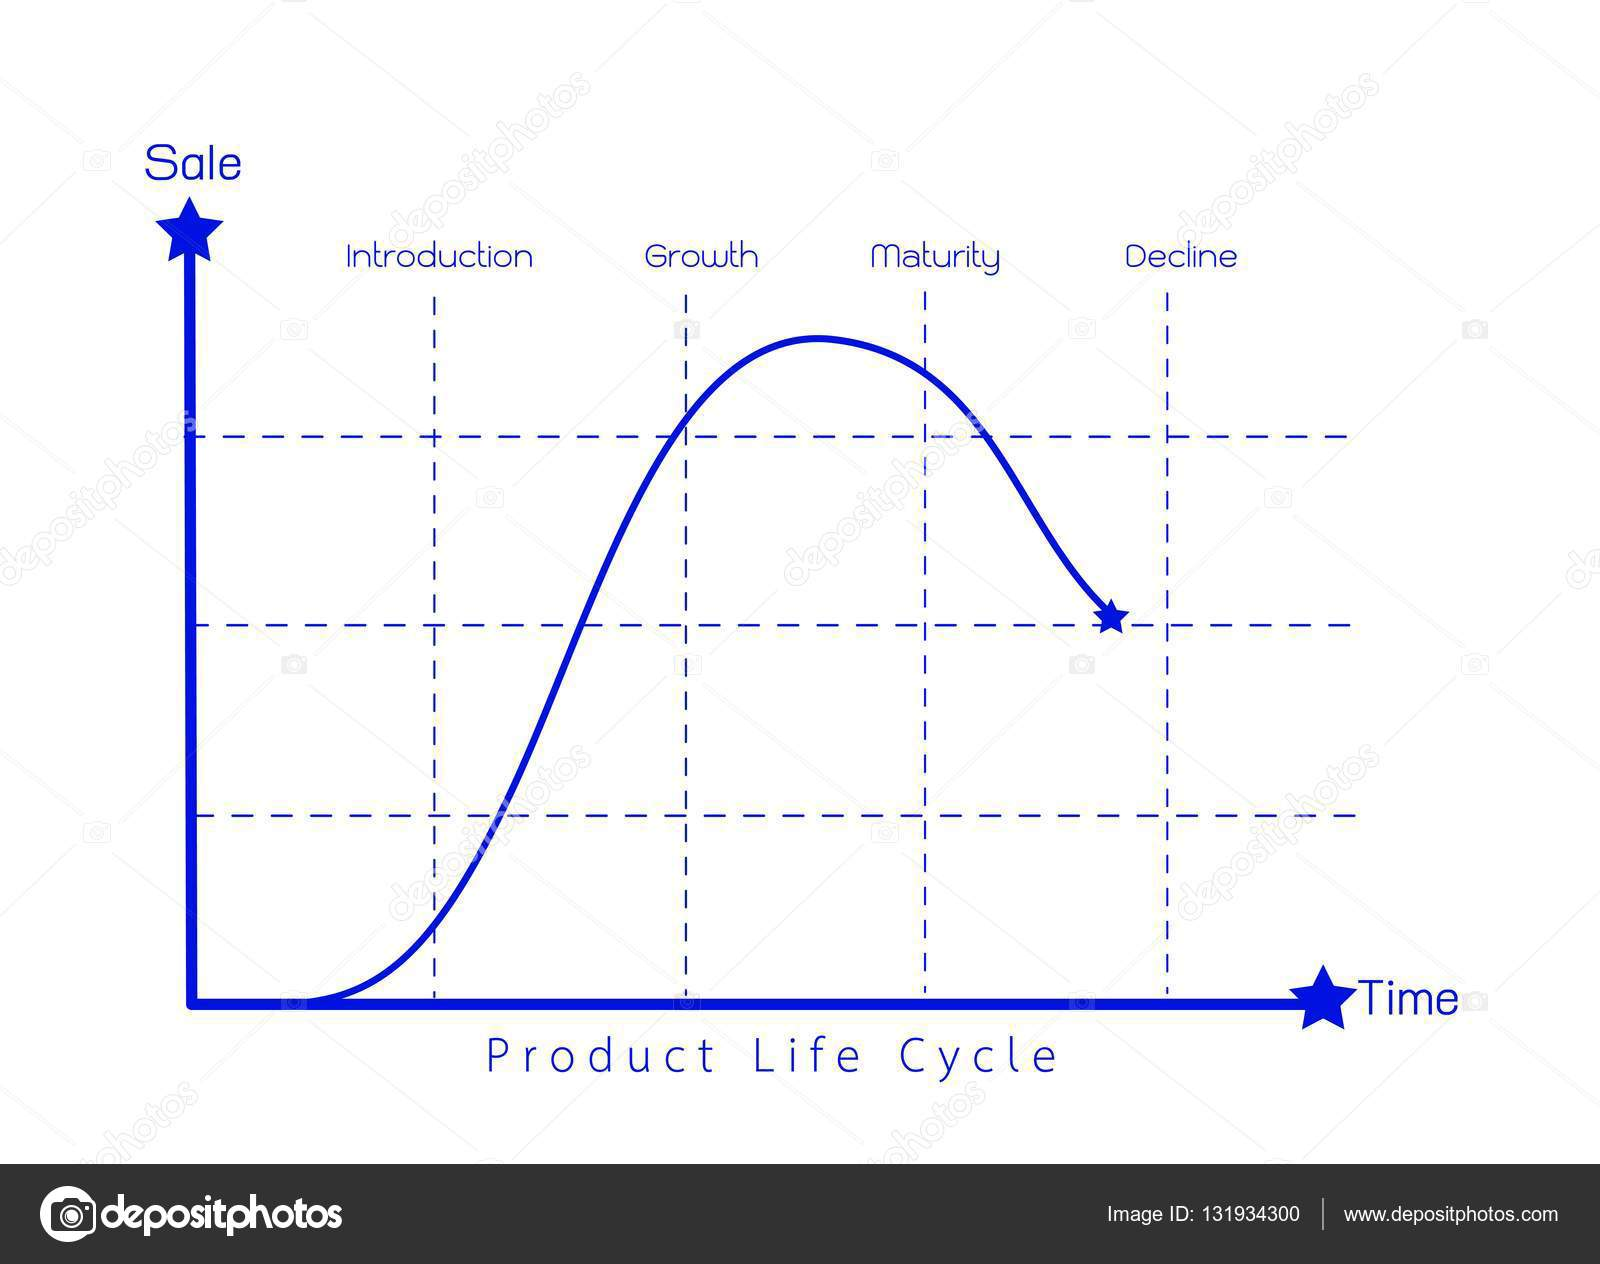 Marketing concept of product life cycle diagram chart stock business and marketing concepts 4 stage of product life cycle chart vector by iamnee pooptronica Images